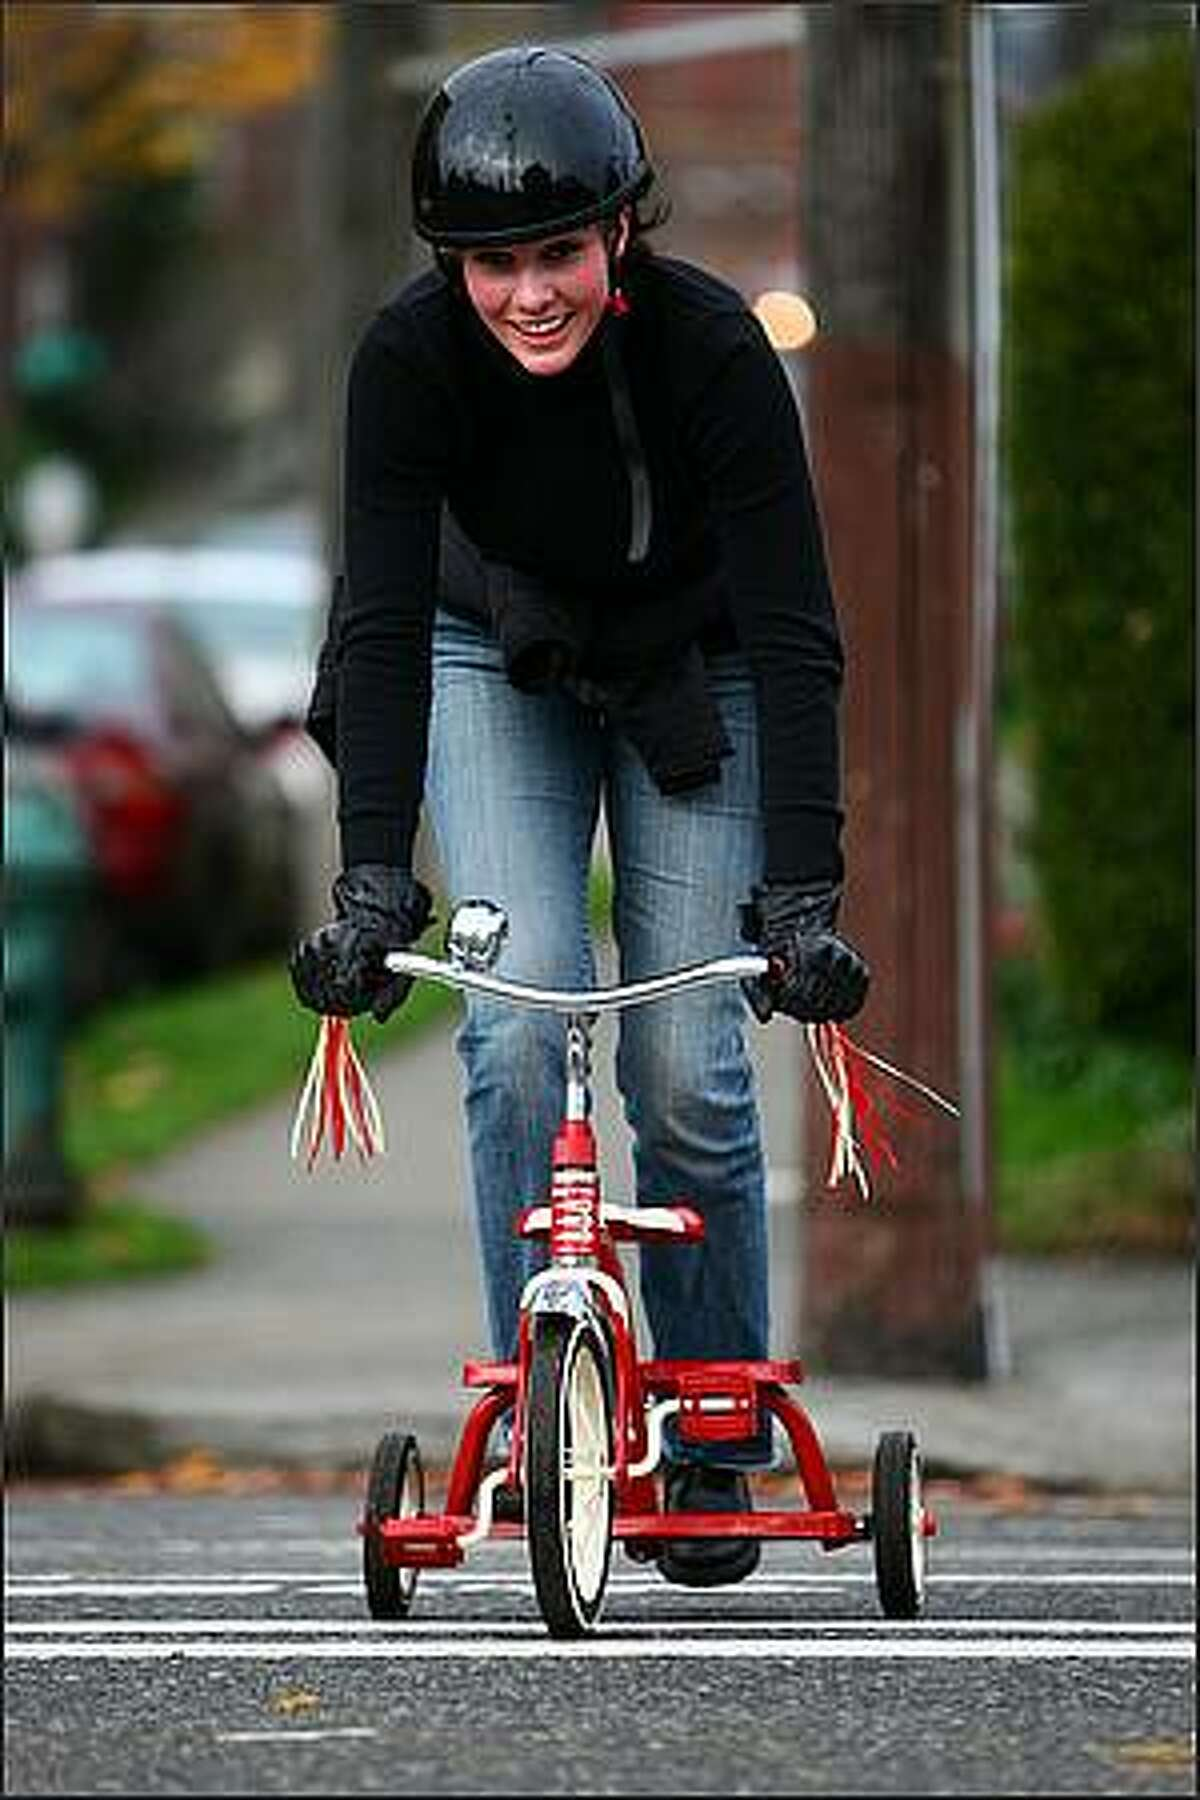 Tricycle rider Shaney Clemmons approaches the finish line, the door of the Streamline Tavern in Lower Queen Anne, during the Queen Anne Tricycle Race on Sunday. Helmets and safety gear were encouraged for participants who screamed down some of Queen Anne's steep hills.